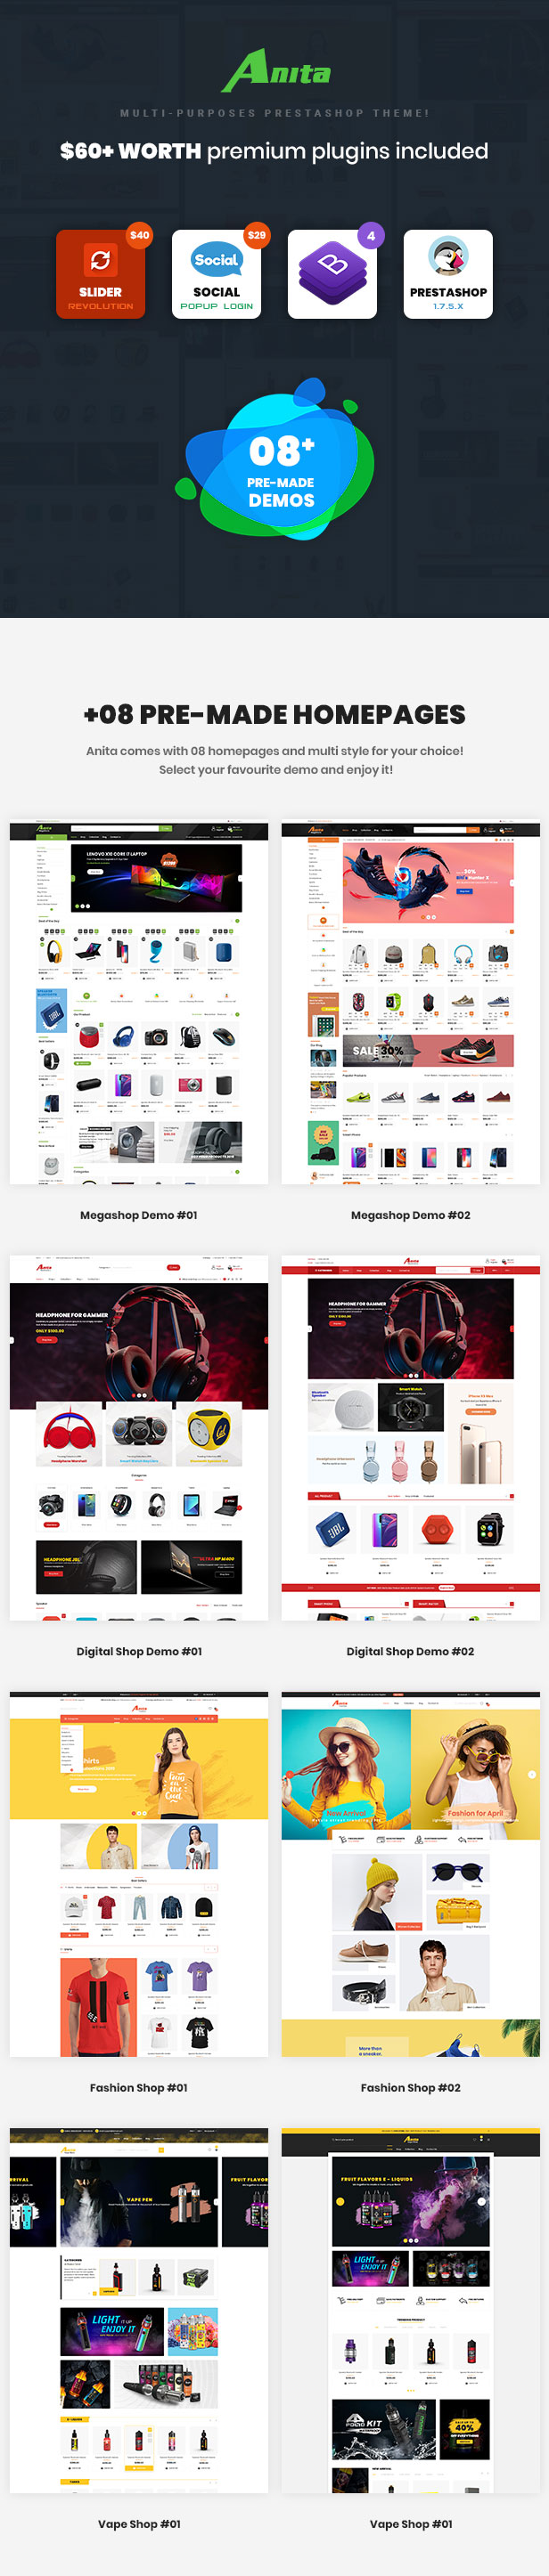 Anita - Multipurpose Prestashop 1.7 Theme